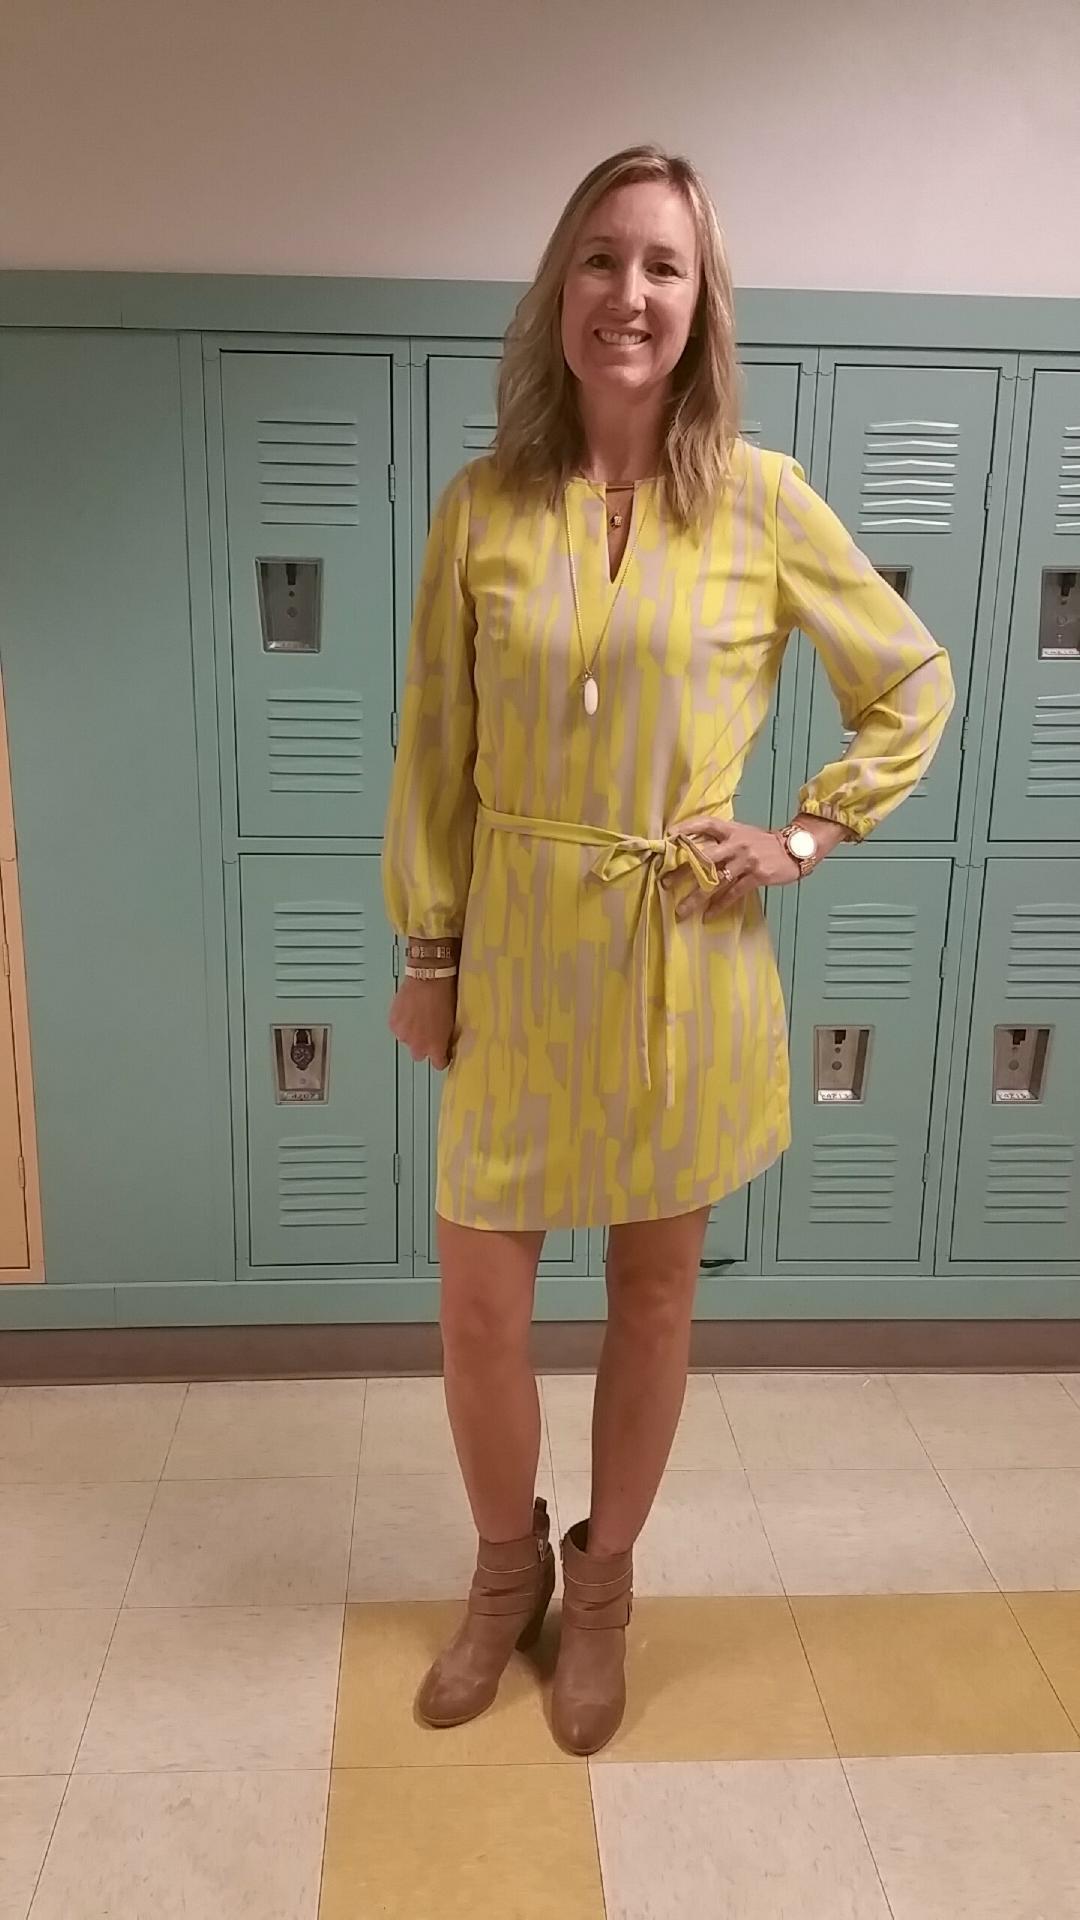 Best Dressed of UACHS: November - The Student Voice